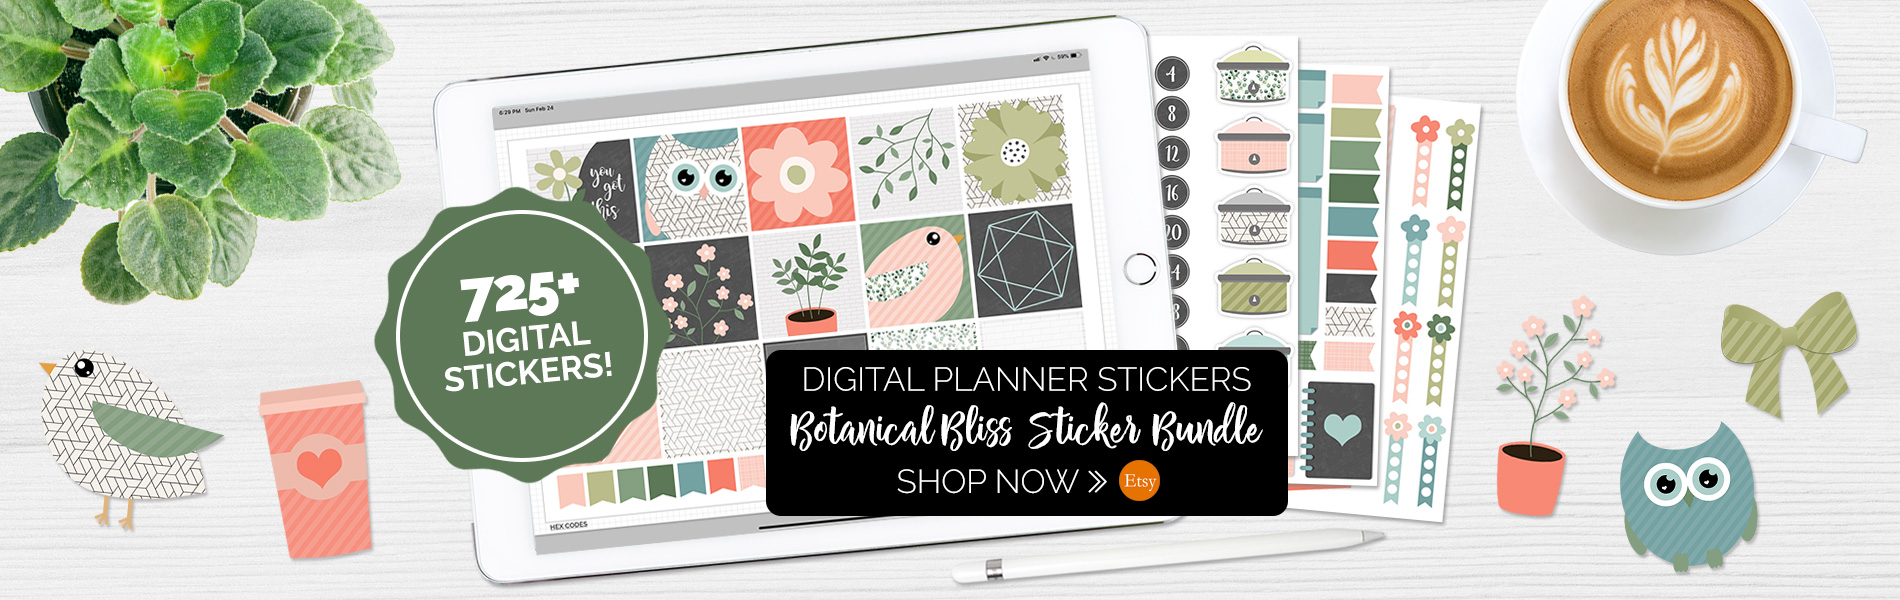 Botanical Bliss Digital Planner Sticker Set